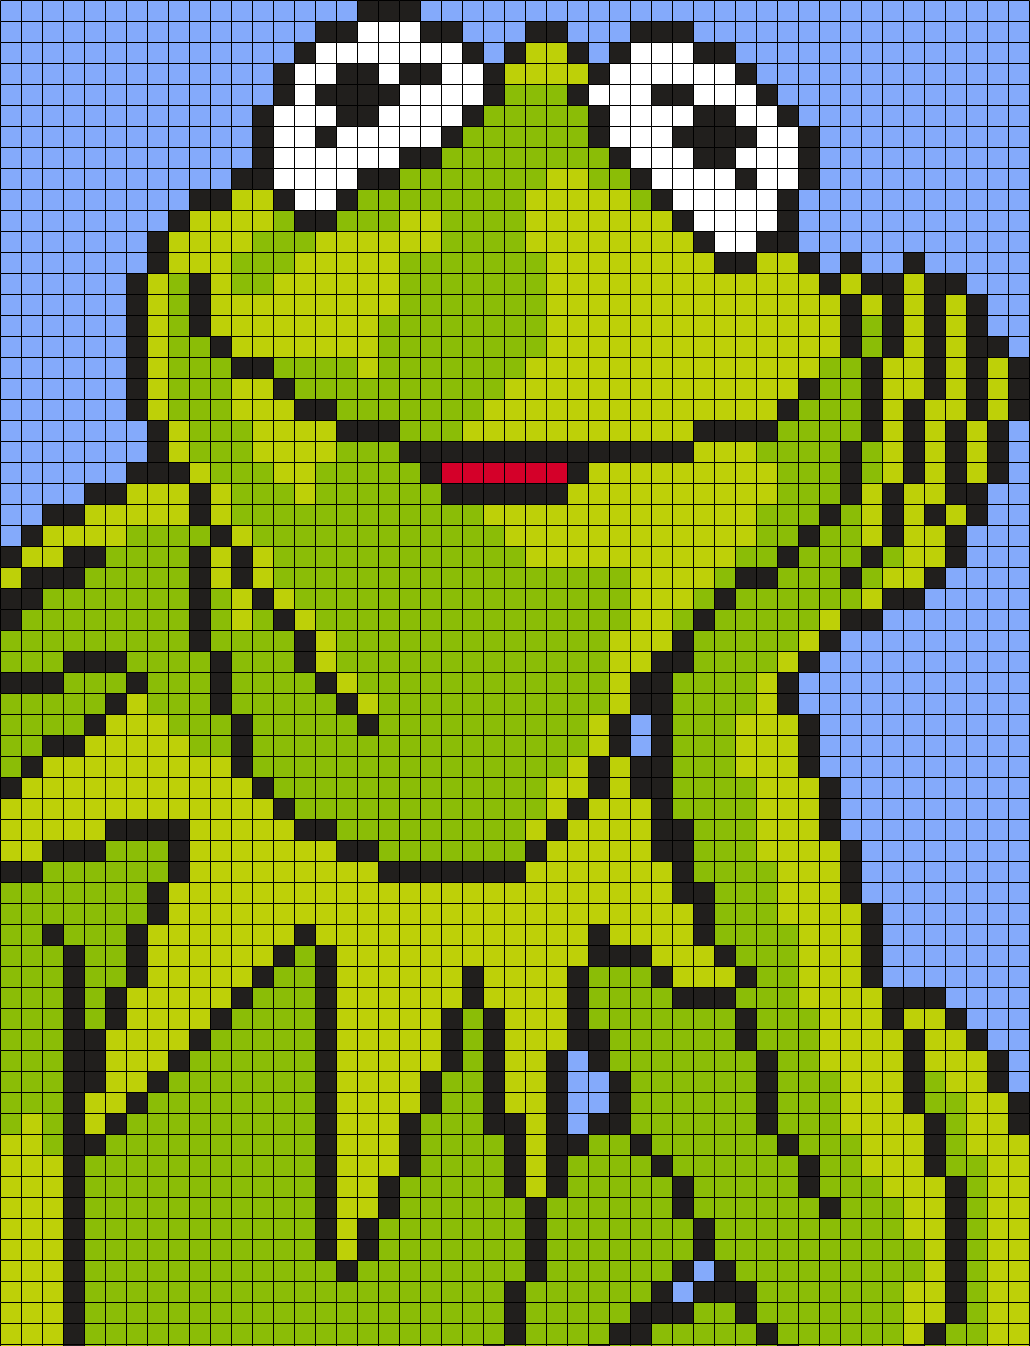 Kermit The Frog From The Muppets (Square)